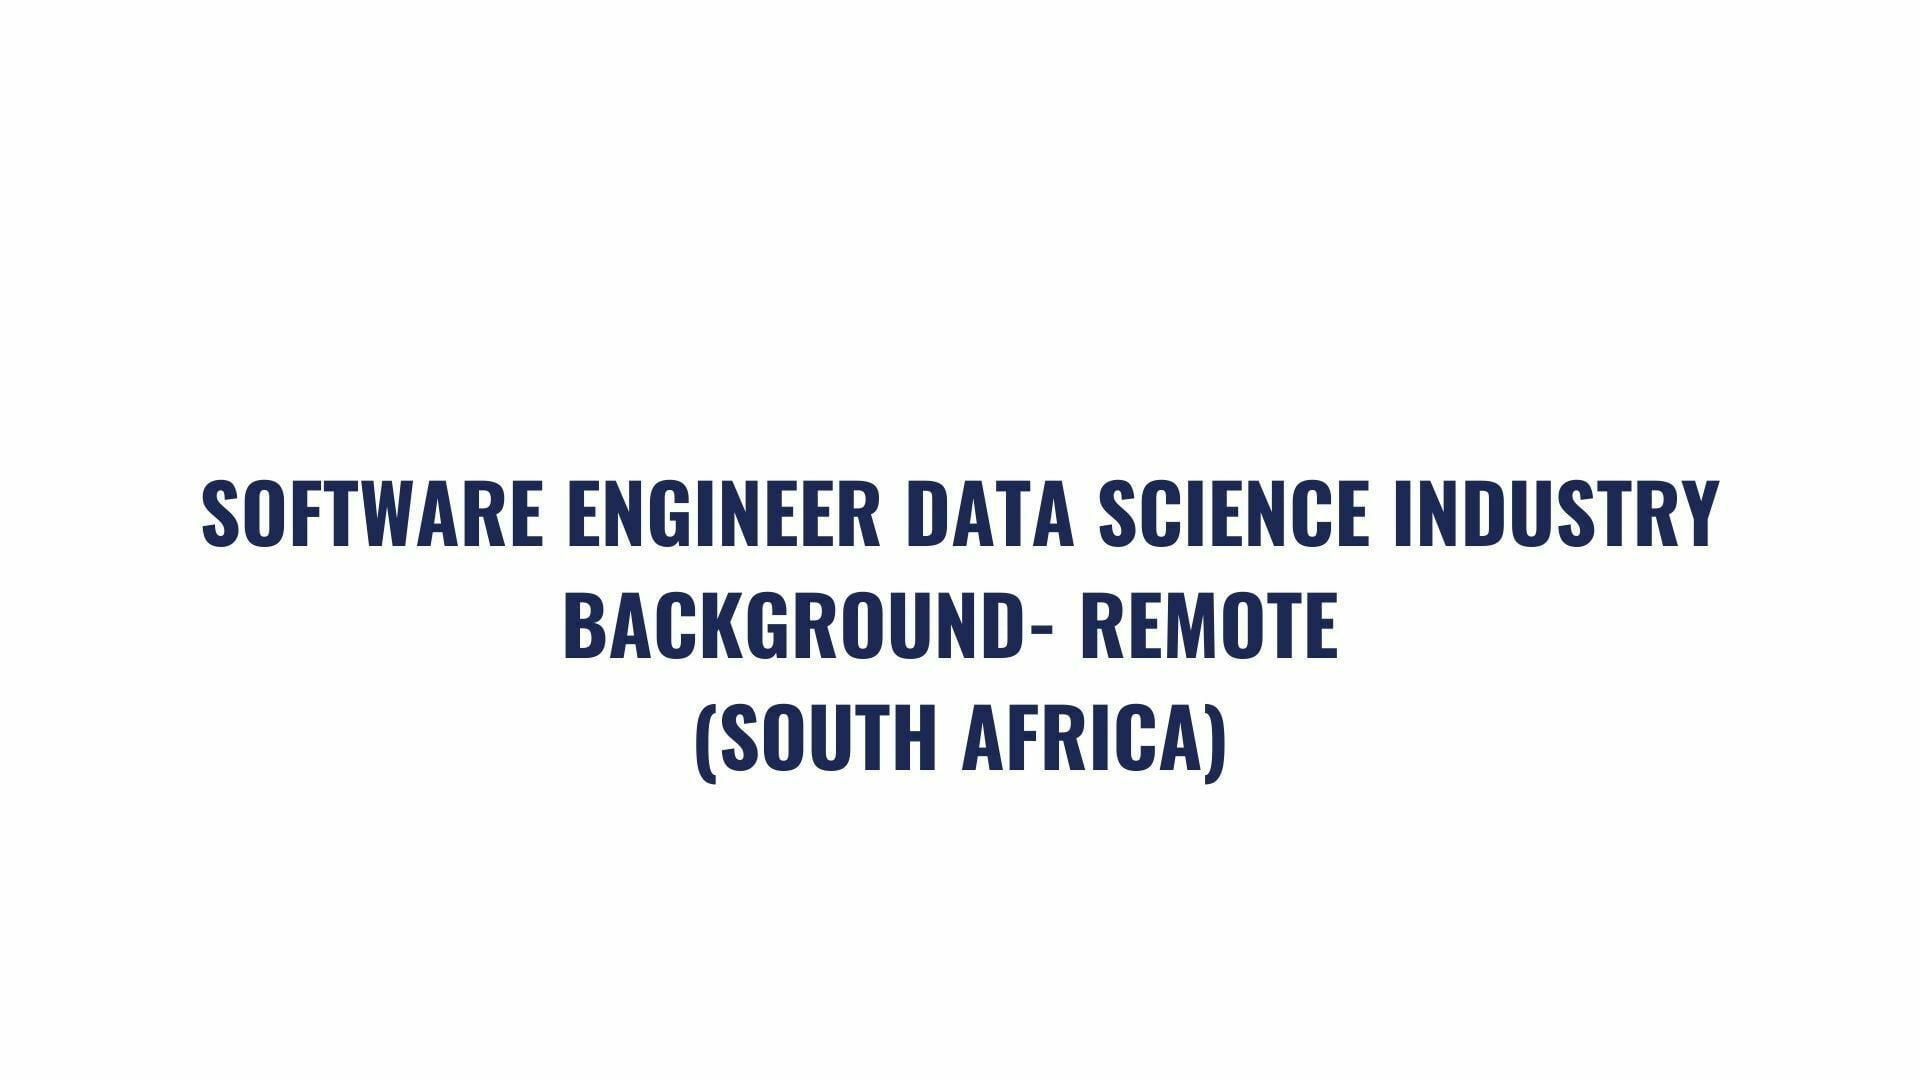 DATA SCIENCE AND DATA ENGINEER JOB OPPORTUNITY